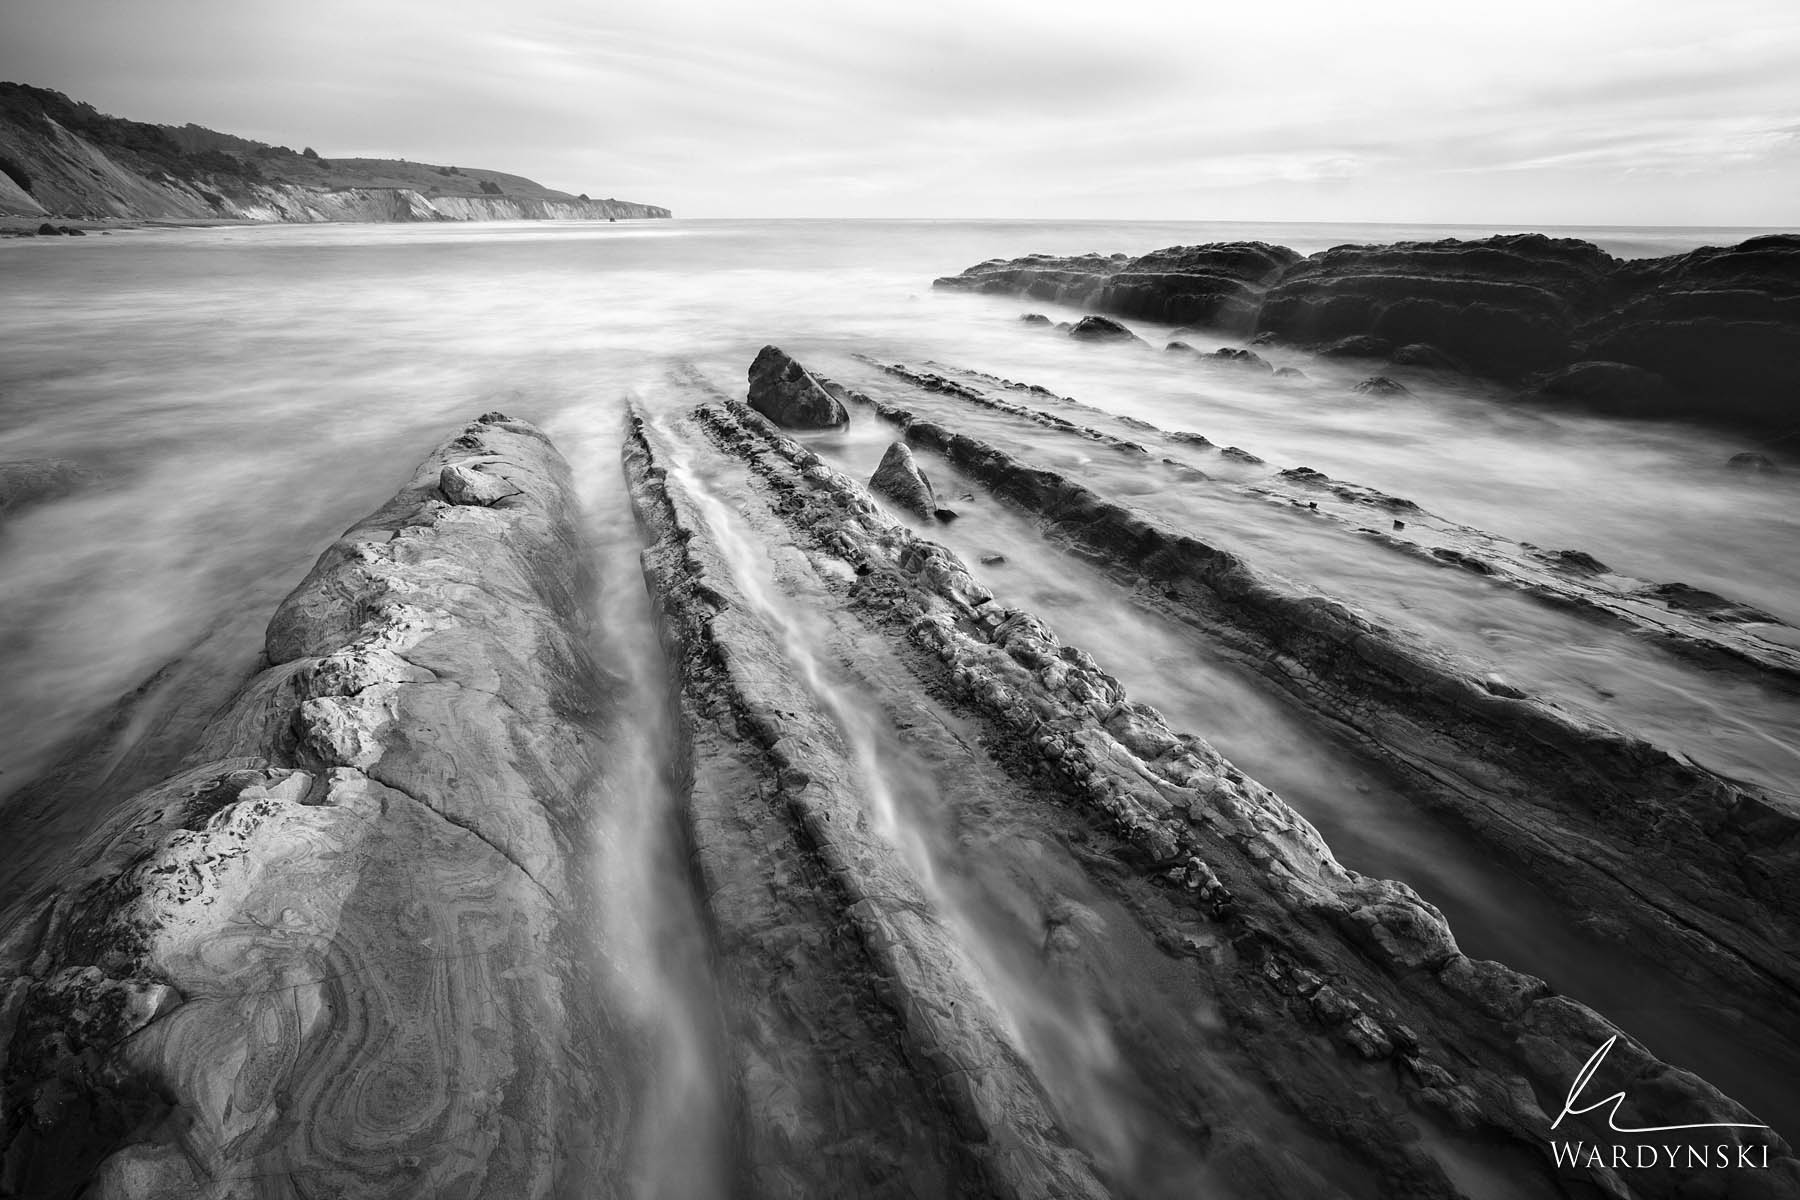 Black and White Fine Art Print | Limited Edition of 25  Sandstone fins lead into the chilly water of the Pacific Ocean near Point...